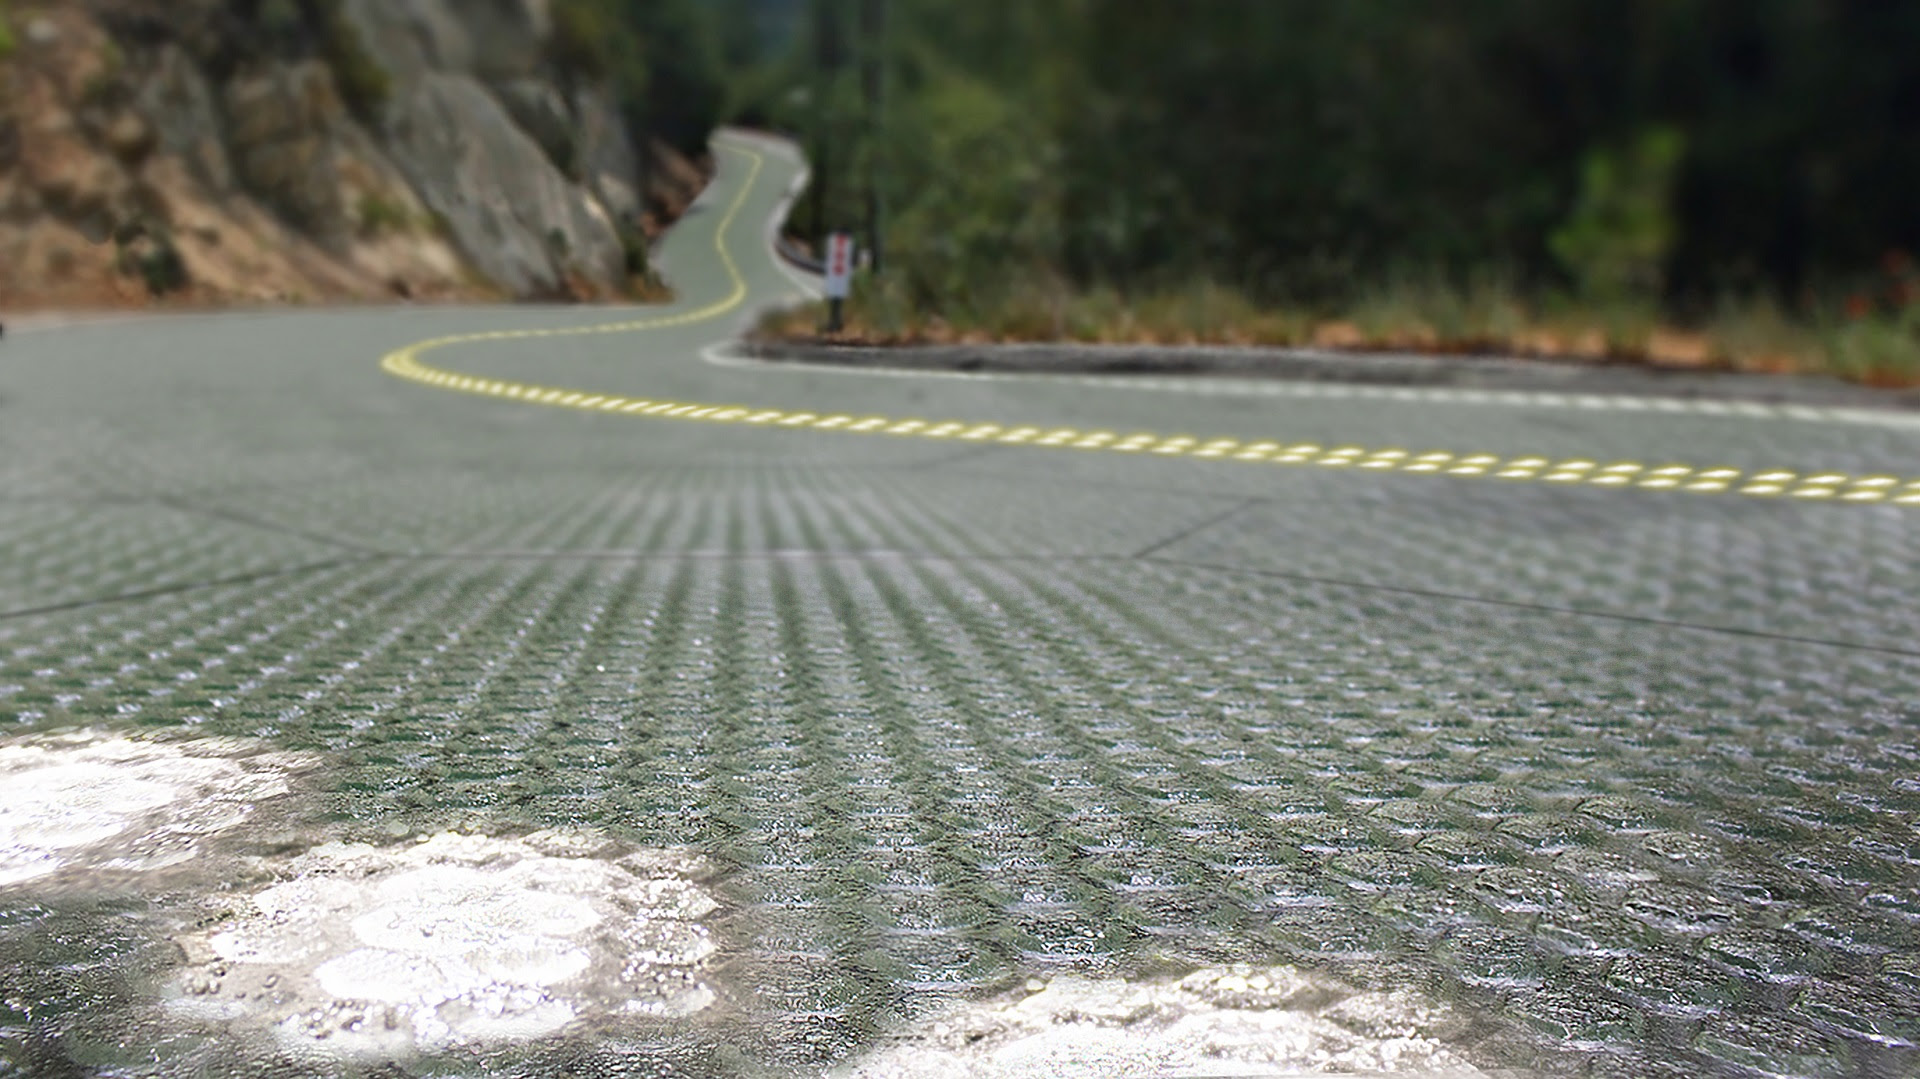 Route 66 could become a giant solar panel